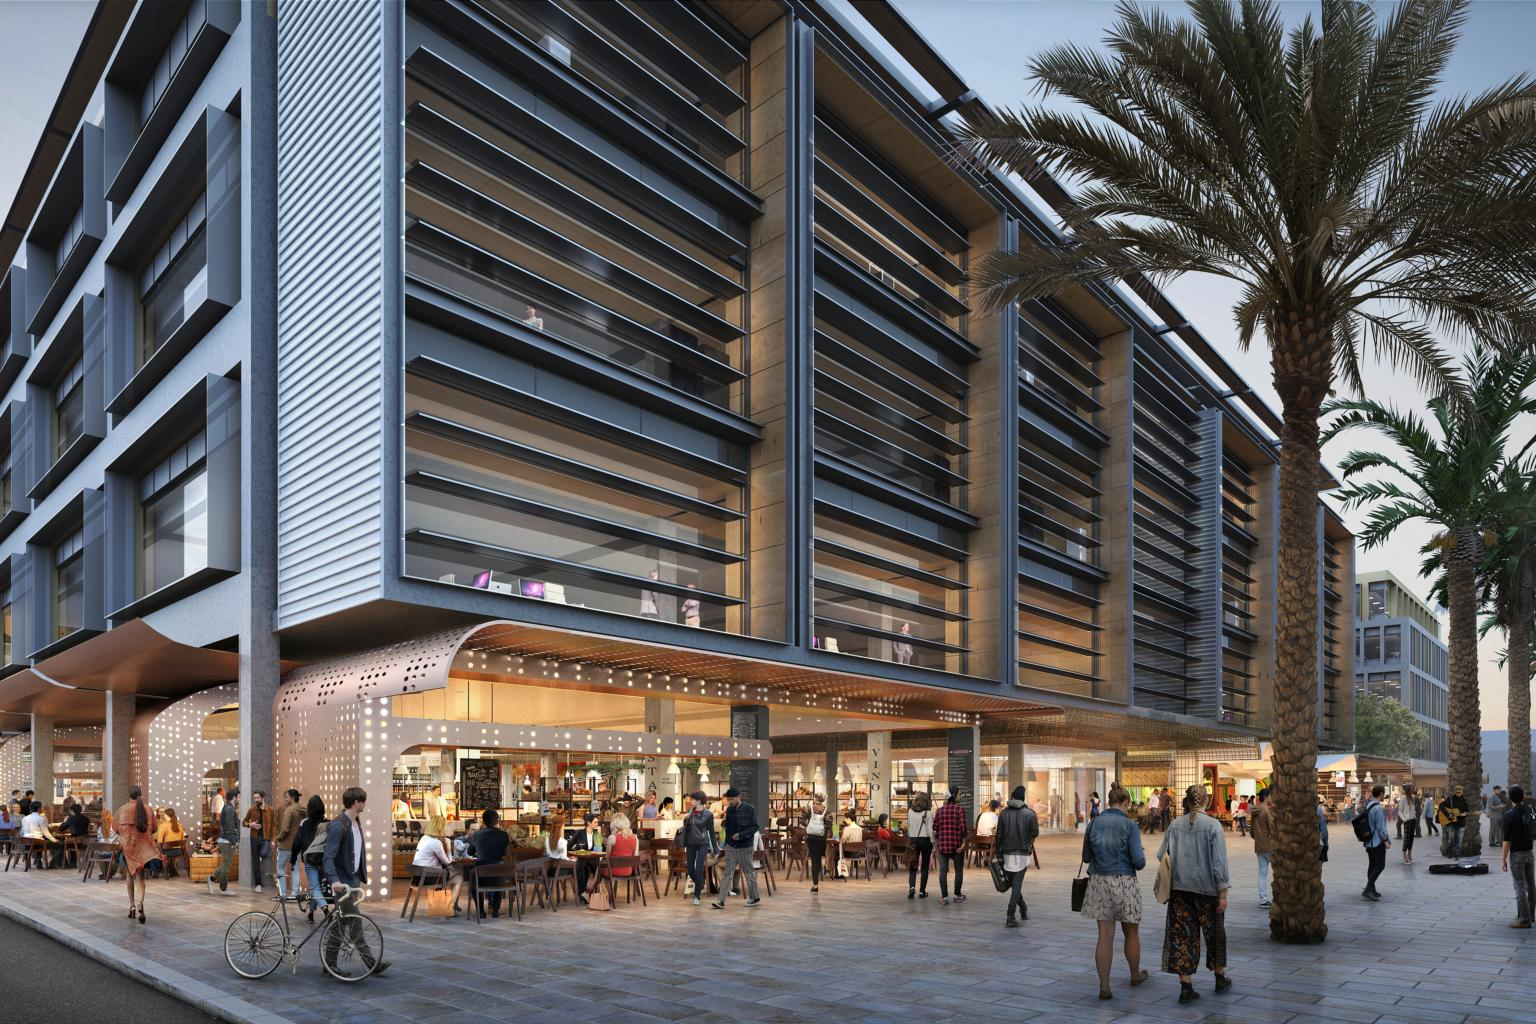 New Perth: Five-star hotels, piazzas and revitalised waterfront among highlights of its billion-dollar pandemic makeover